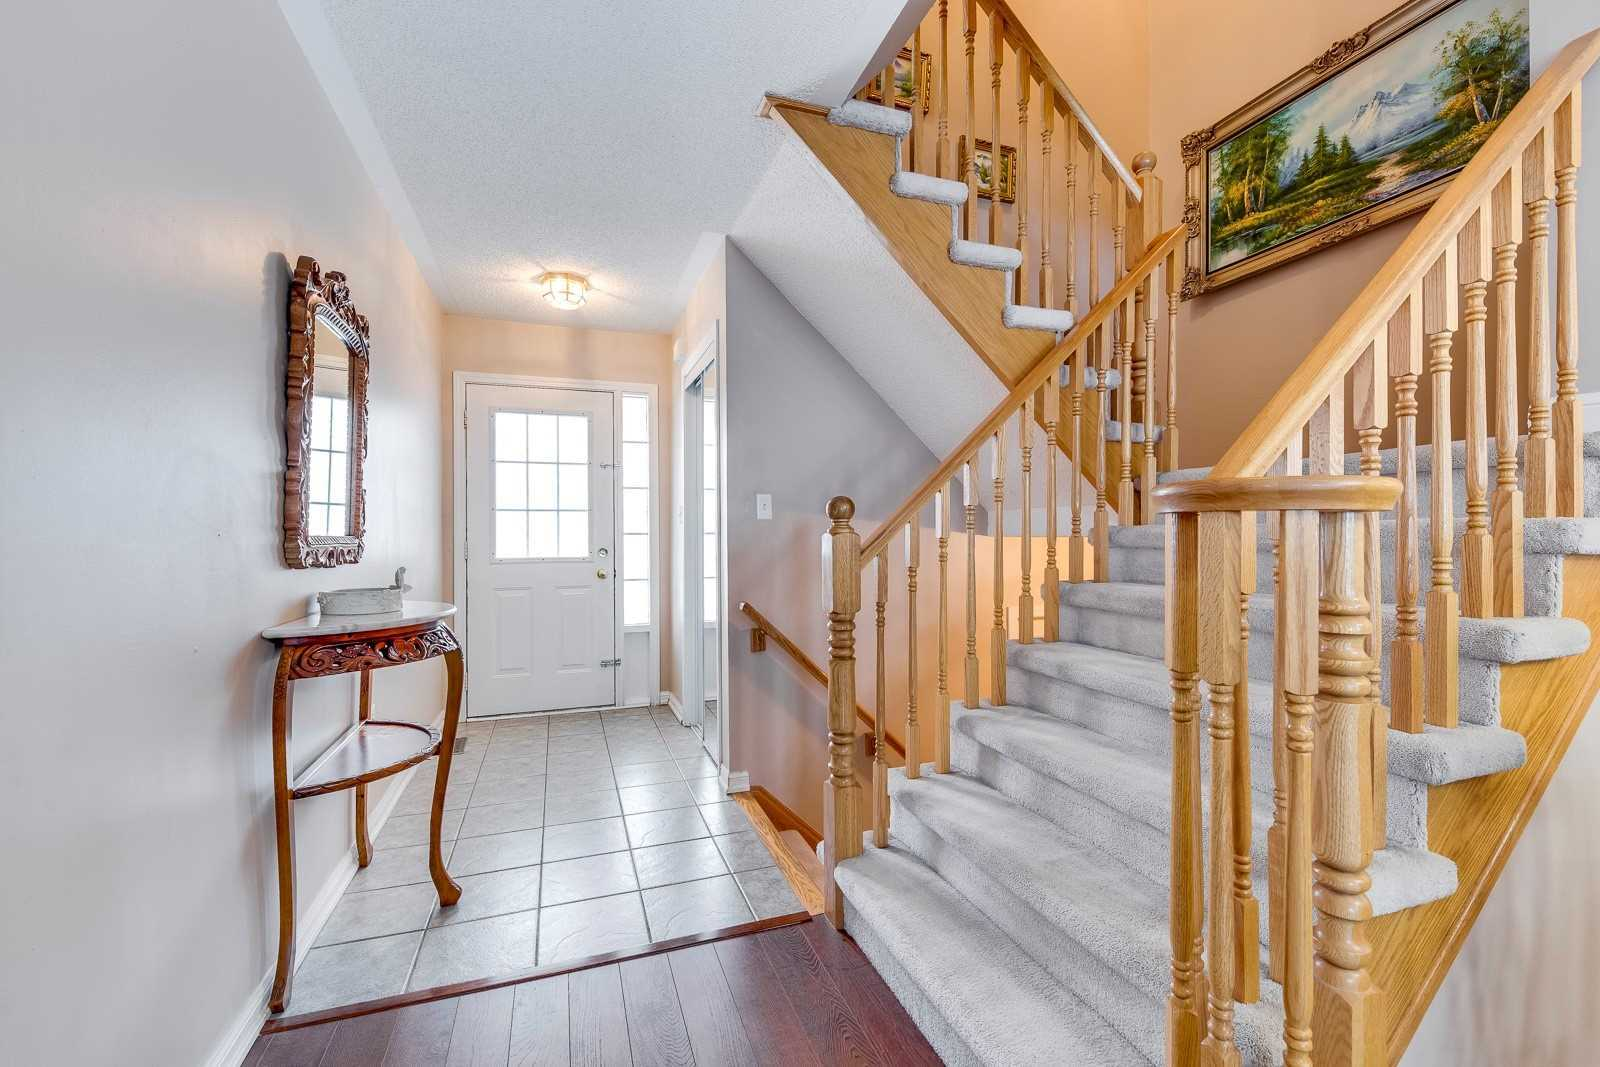 Image 20 of 20 showing inside of 3 Bedroom Att/Row/Twnhouse 2-Storey house for sale at 682 Edwards Ave, Milton L9T6B3